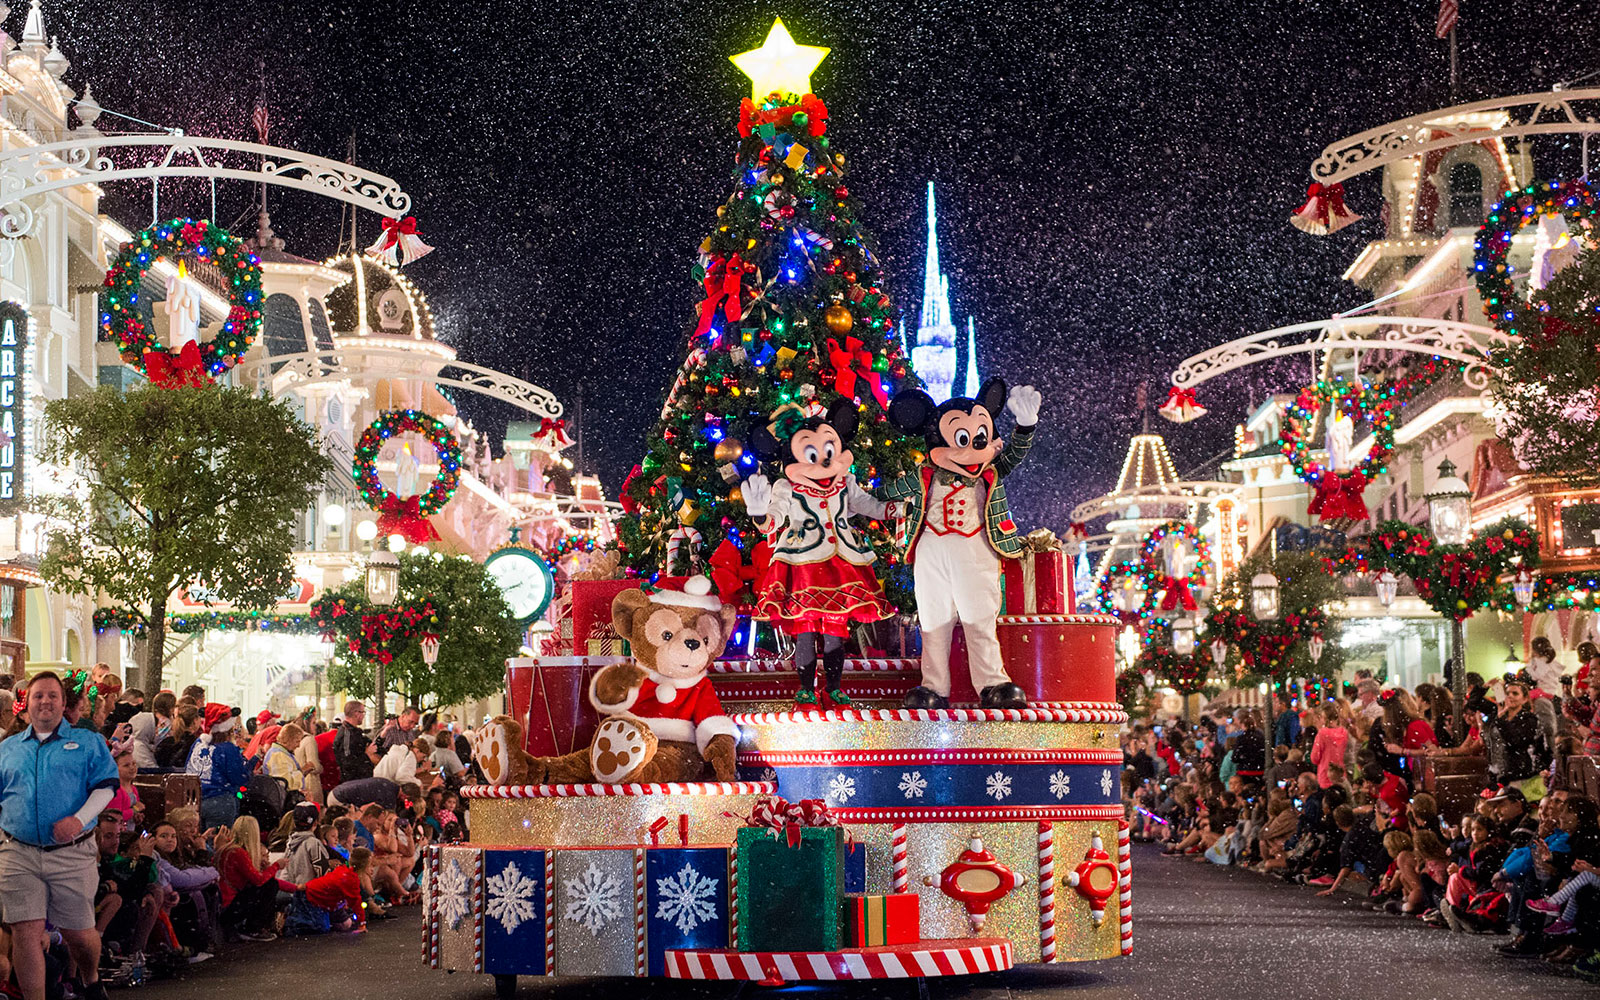 Things You Didn't Know About Disney Parks: Christmas